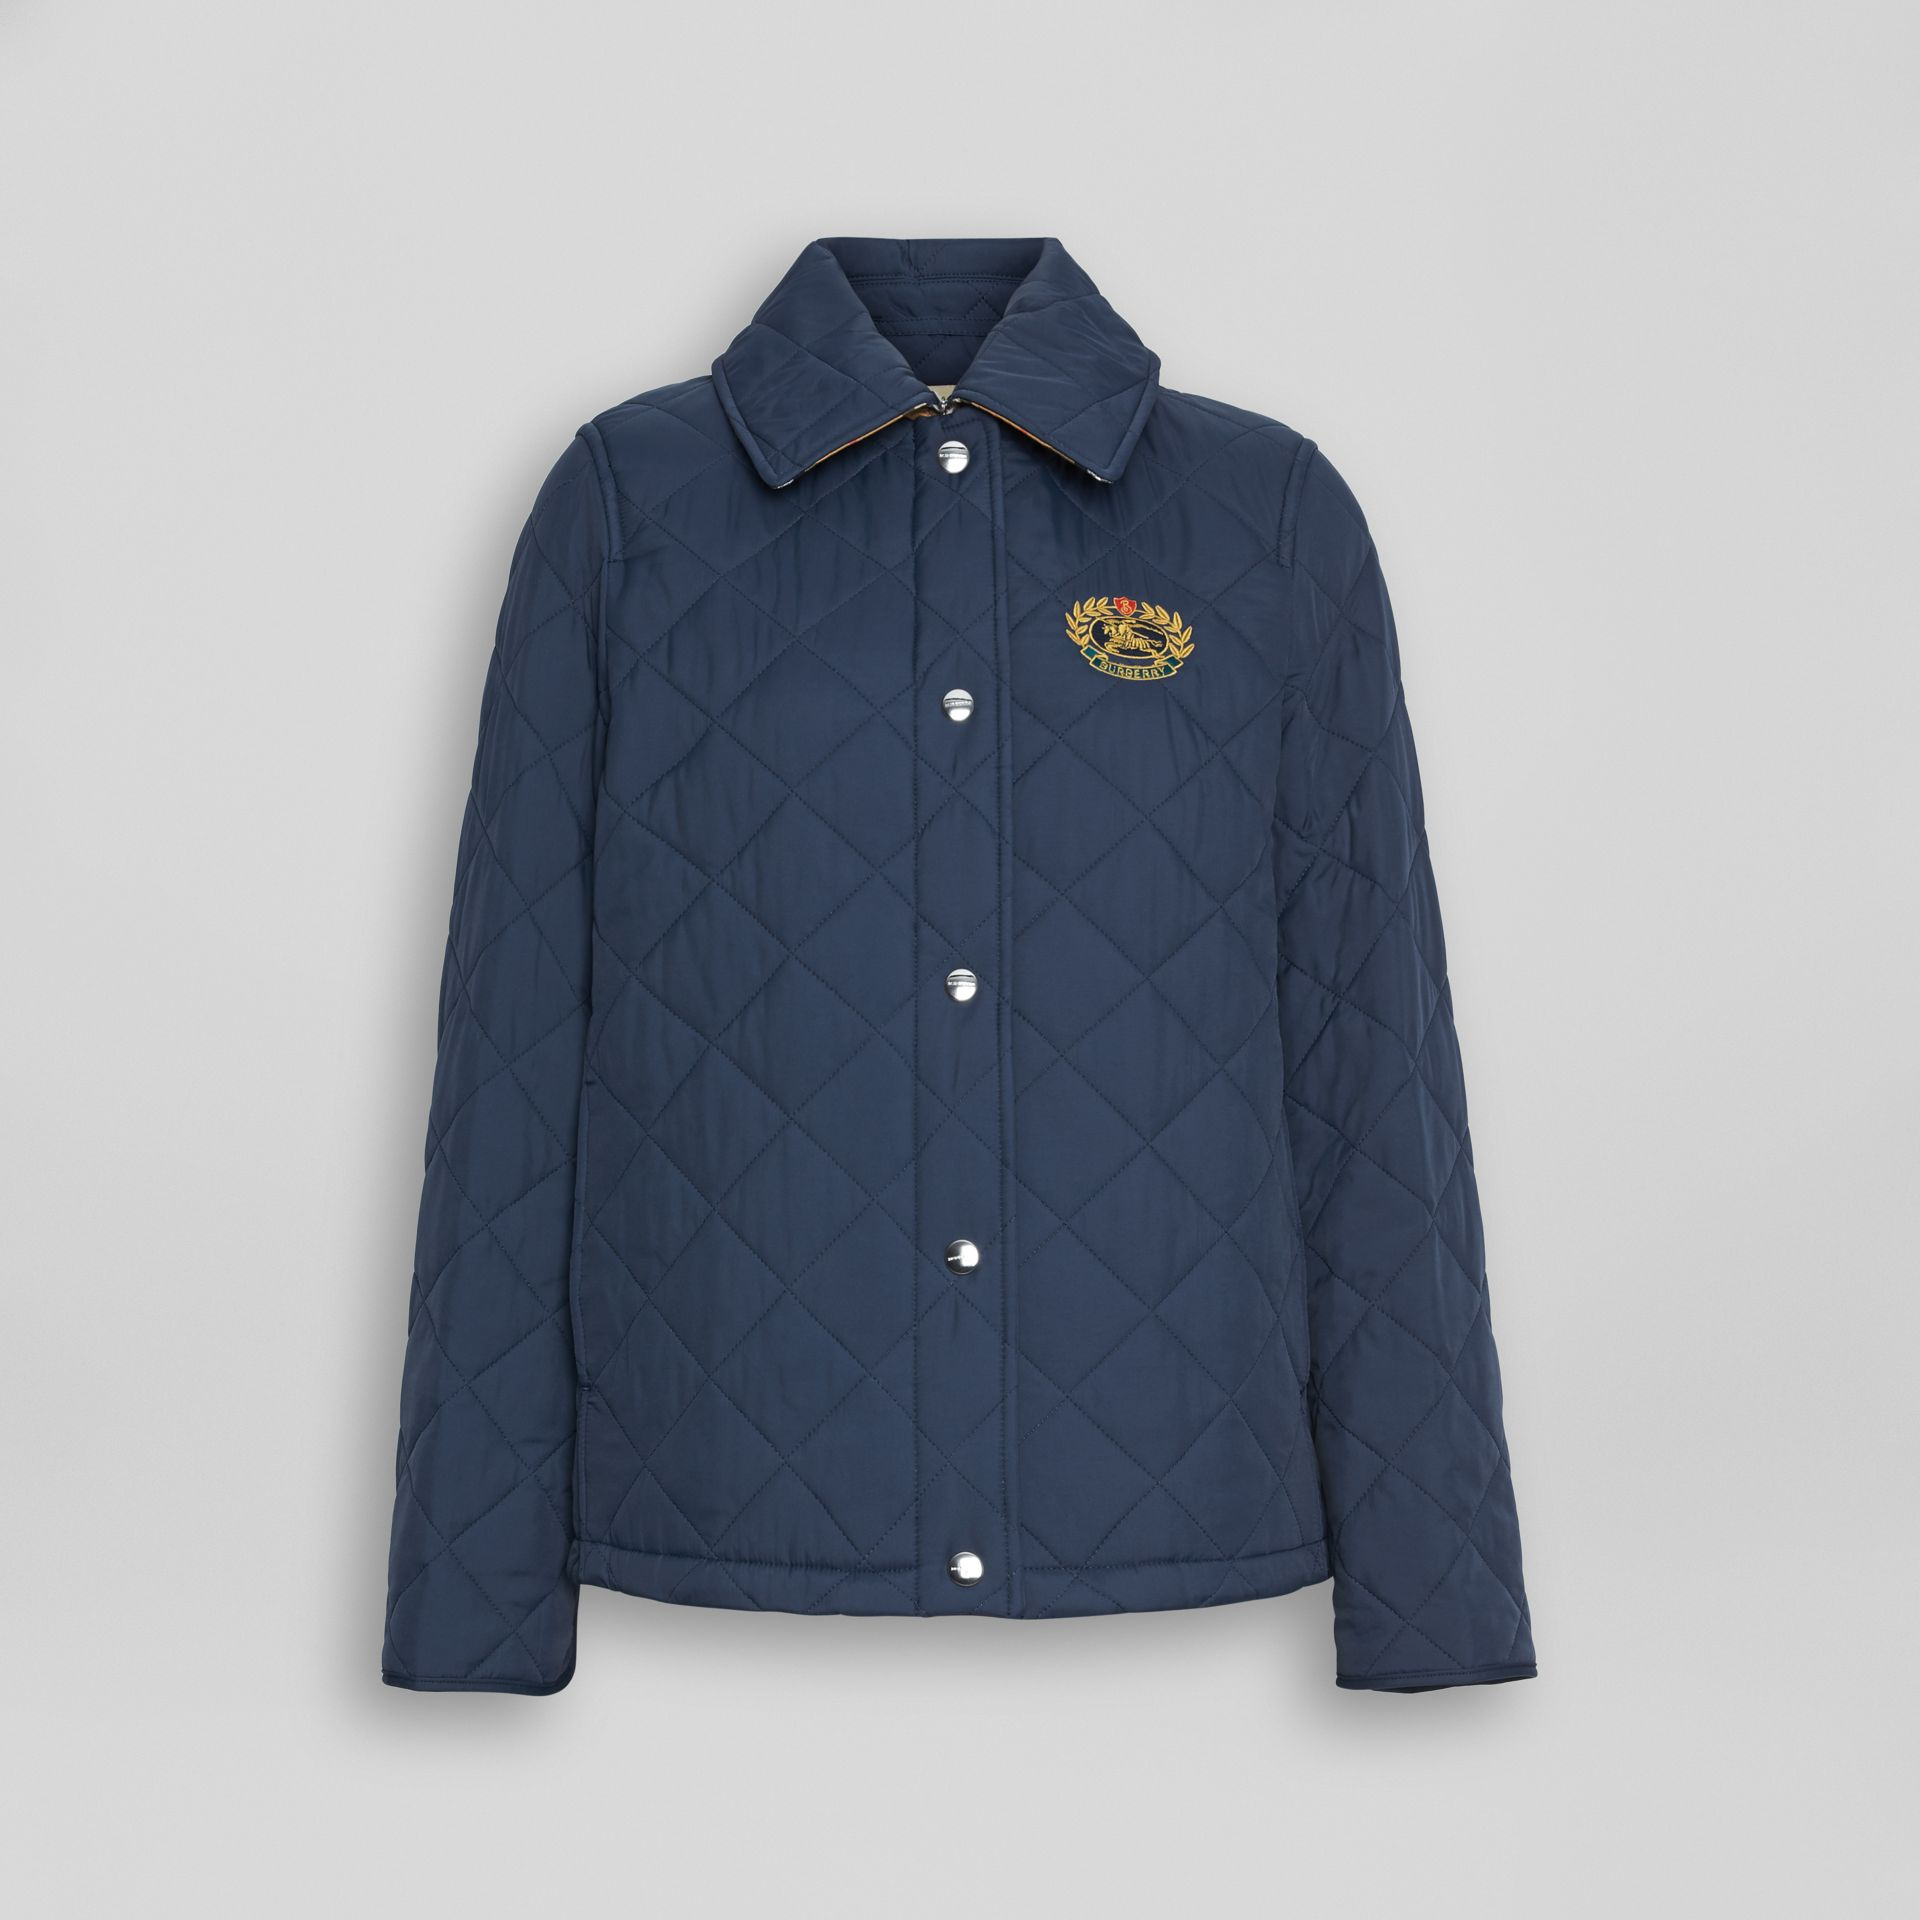 Embroidered Crest Diamond Quilted Jacket in Navy - Women | Burberry Singapore - gallery image 3